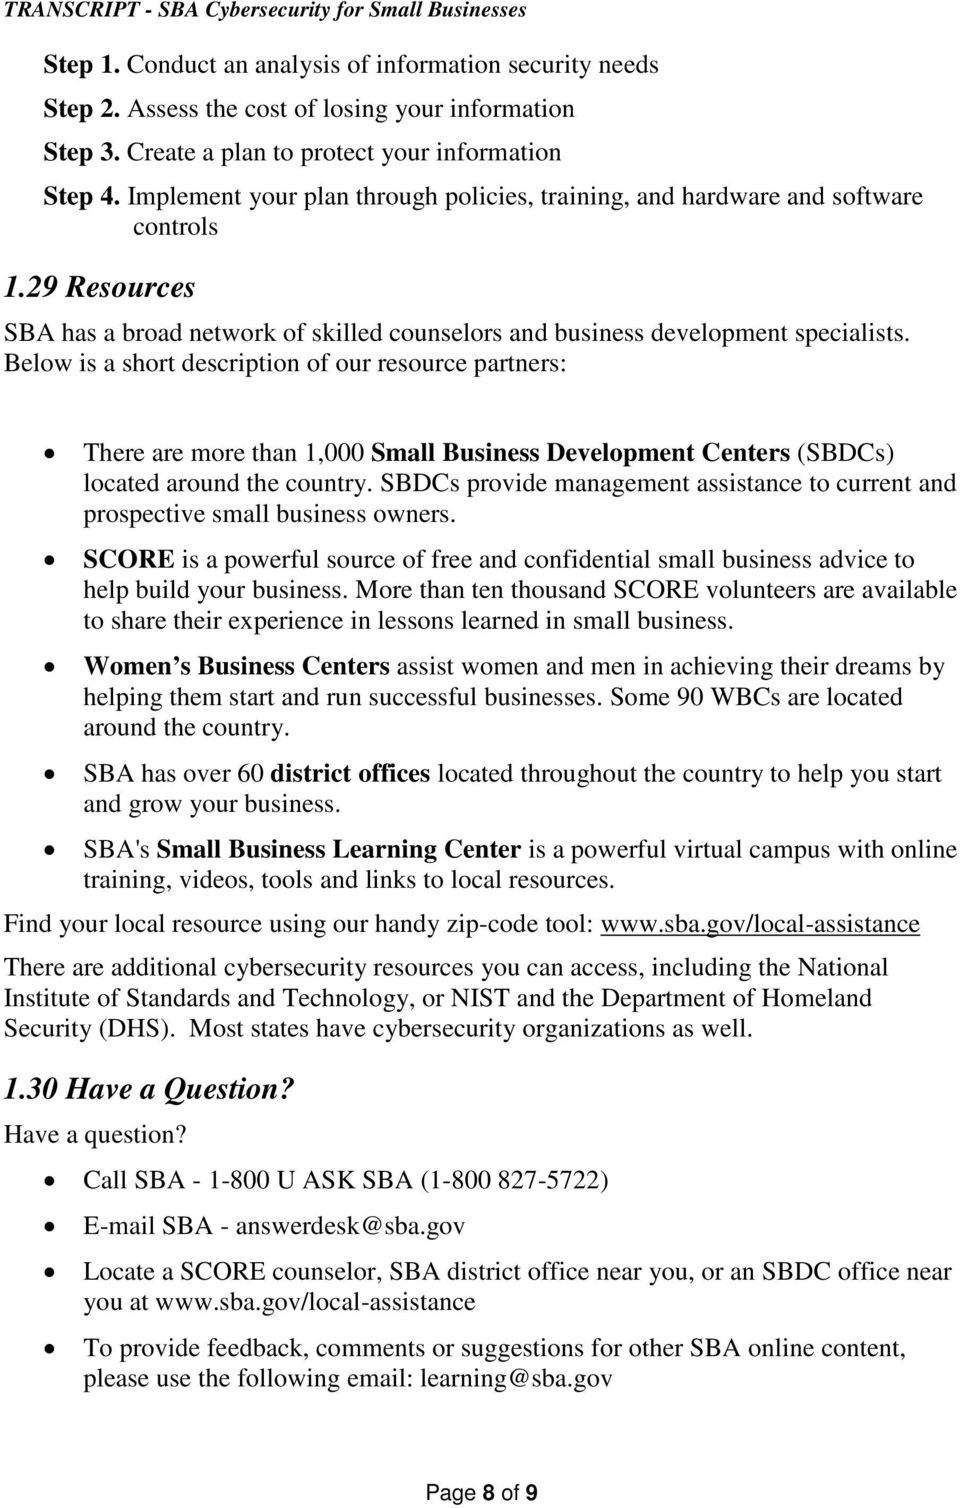 Below is a short description of our resource partners: There are more than 1,000 Small Business Development Centers (SBDCs) located around the country.